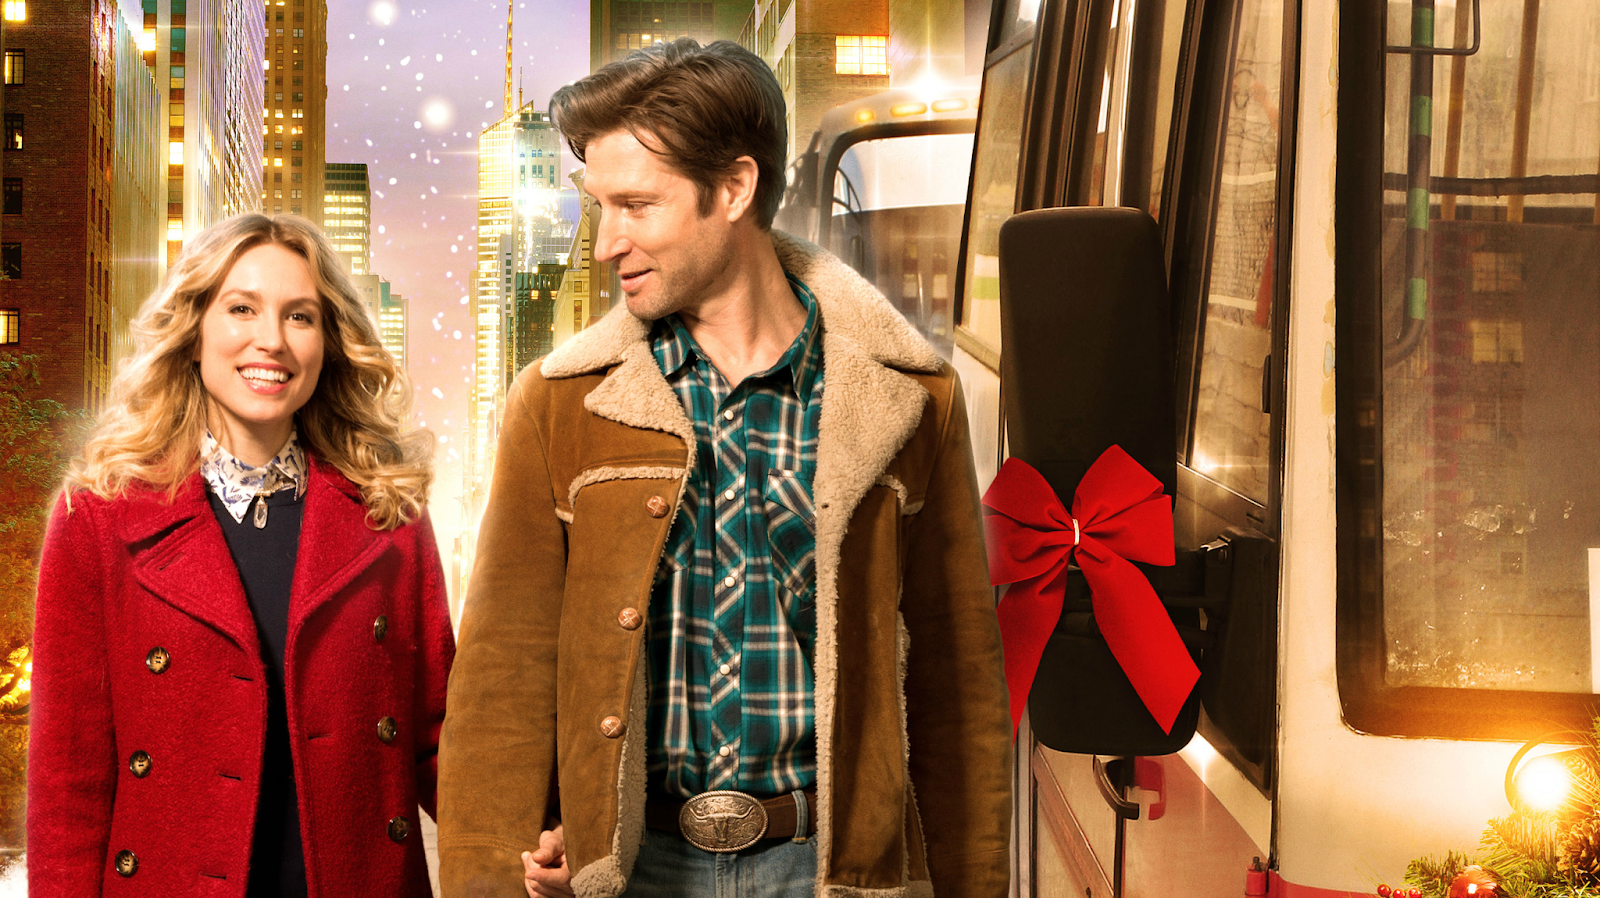 One Starry Christmas Holly Jensen Sarah Carter Luke Shetland Damon Runyan Hallmark